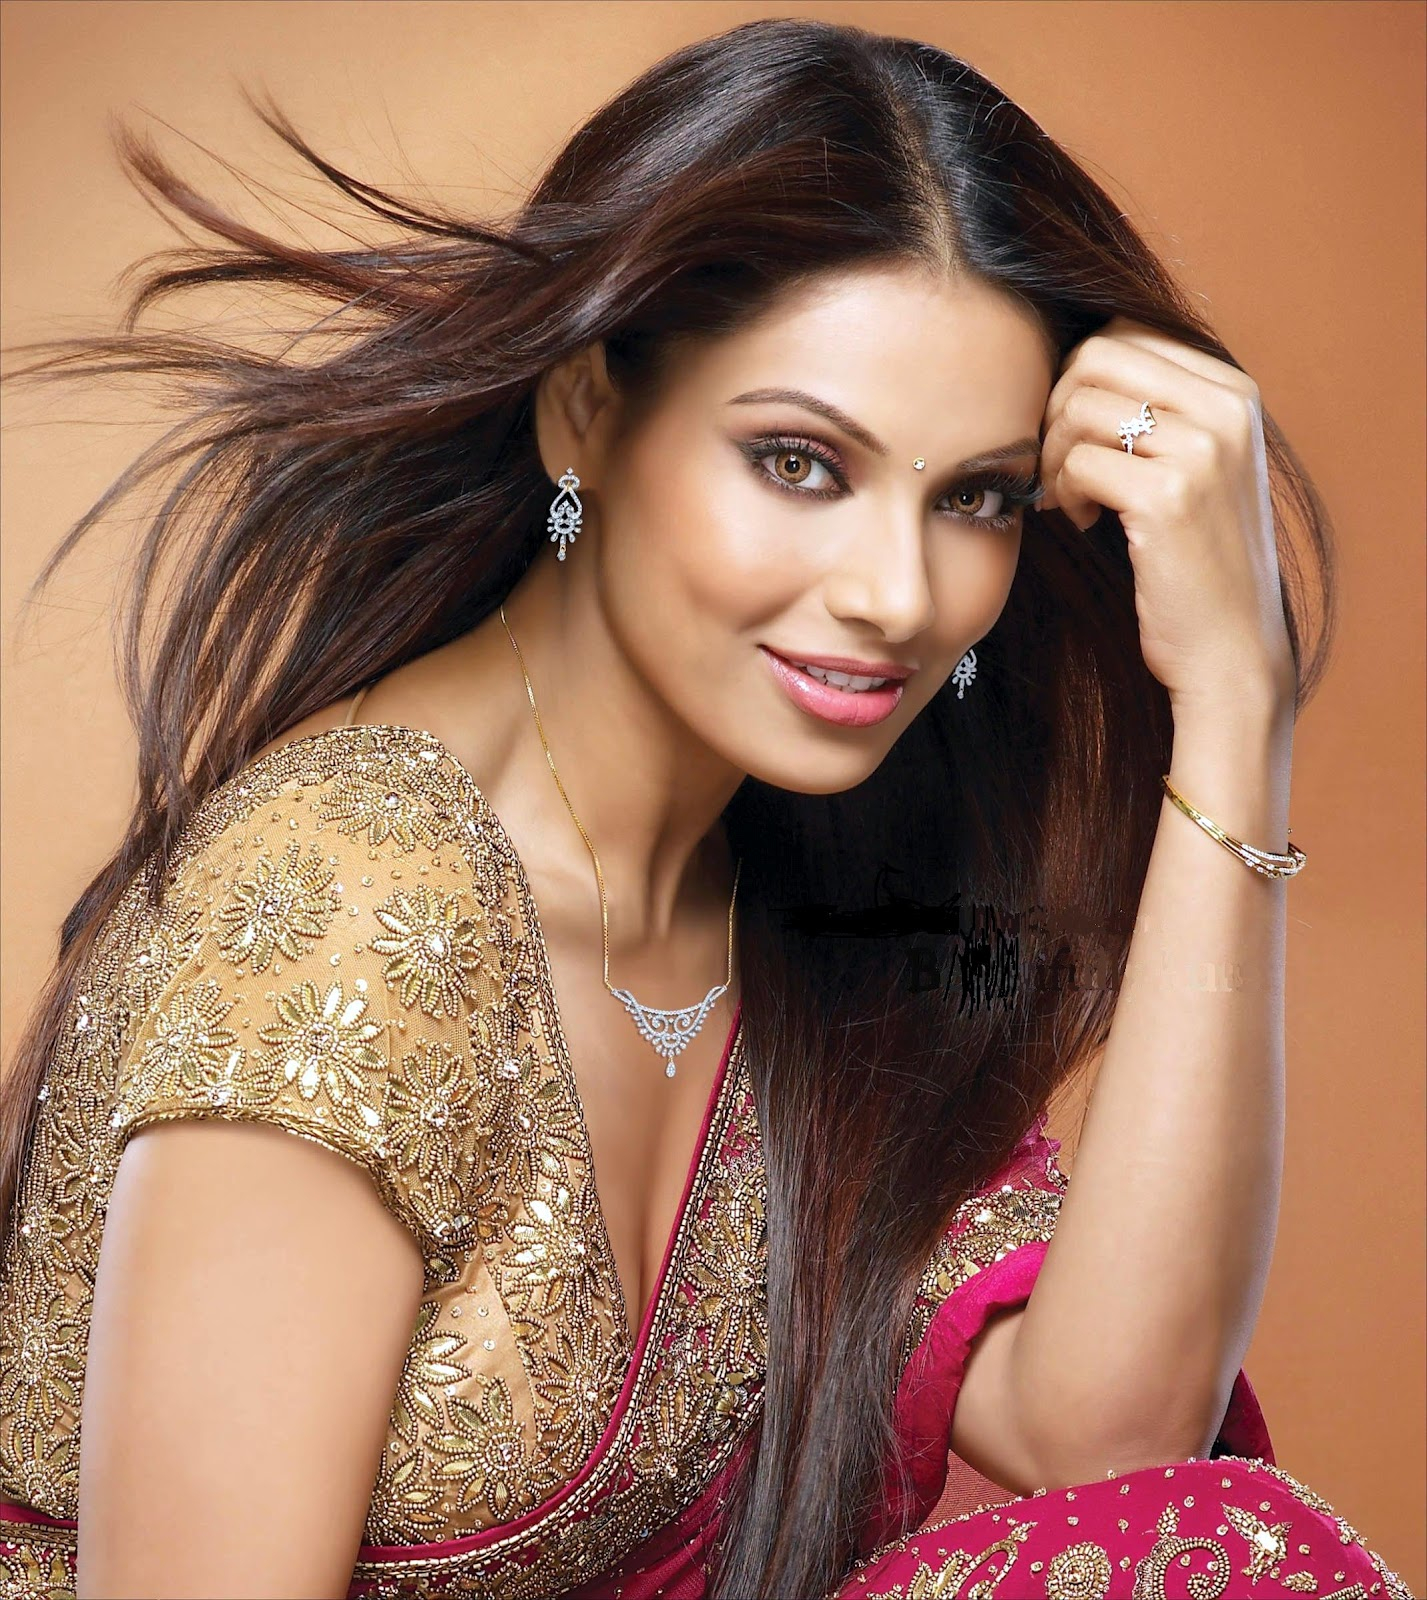 bipasha basu 2018 worth – countrybaptist